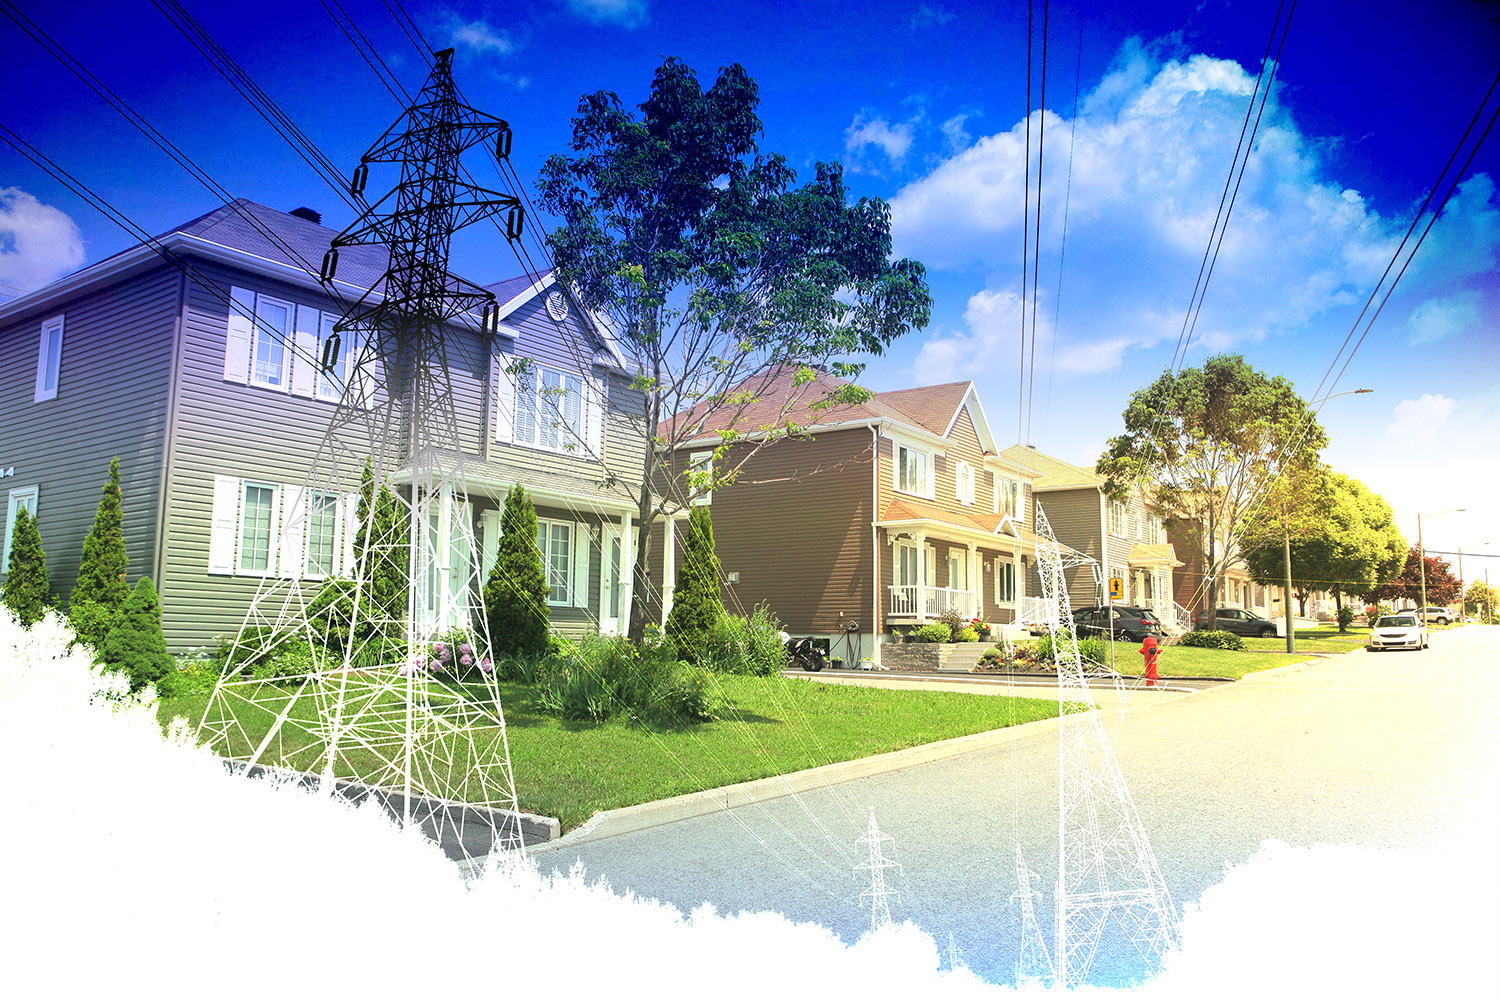 Residential Street Electrification on White - RF Stock Photo